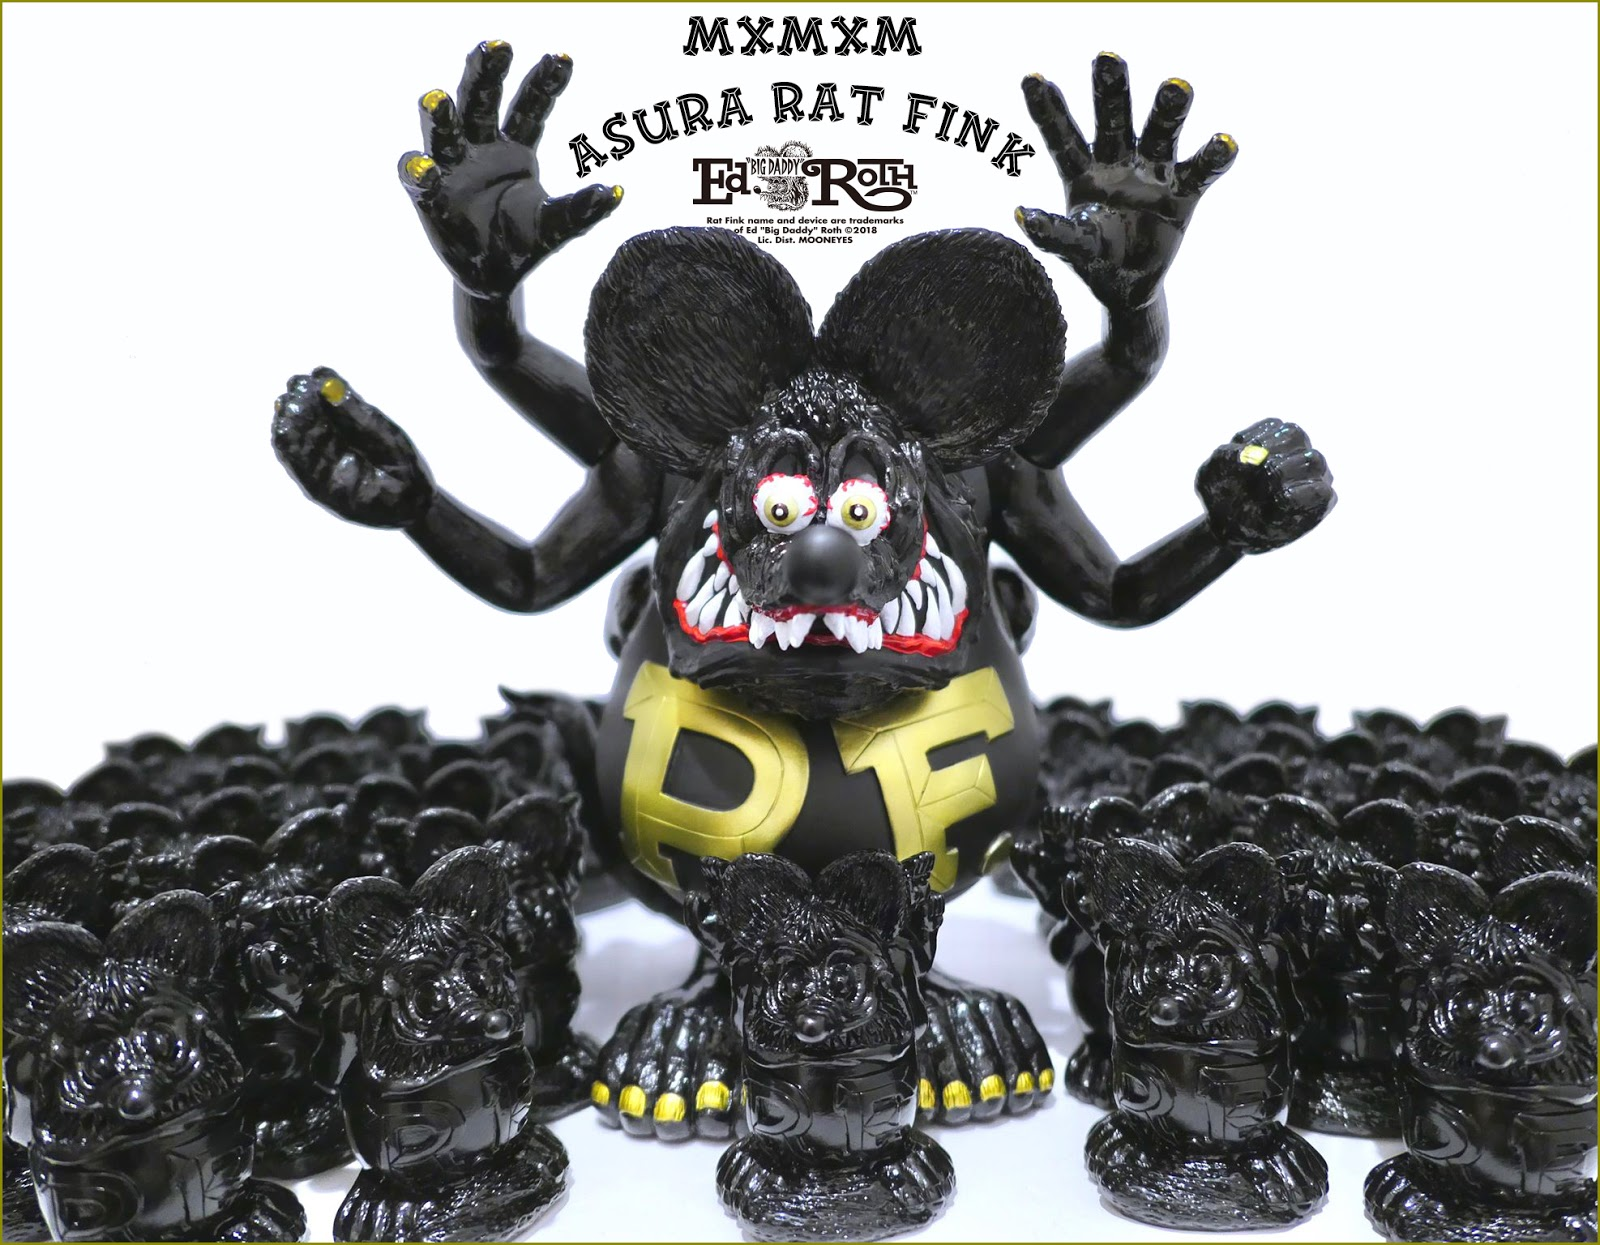 MxMxM: ASURA RAT FINK (Black+Gold Edition) from Blackbook